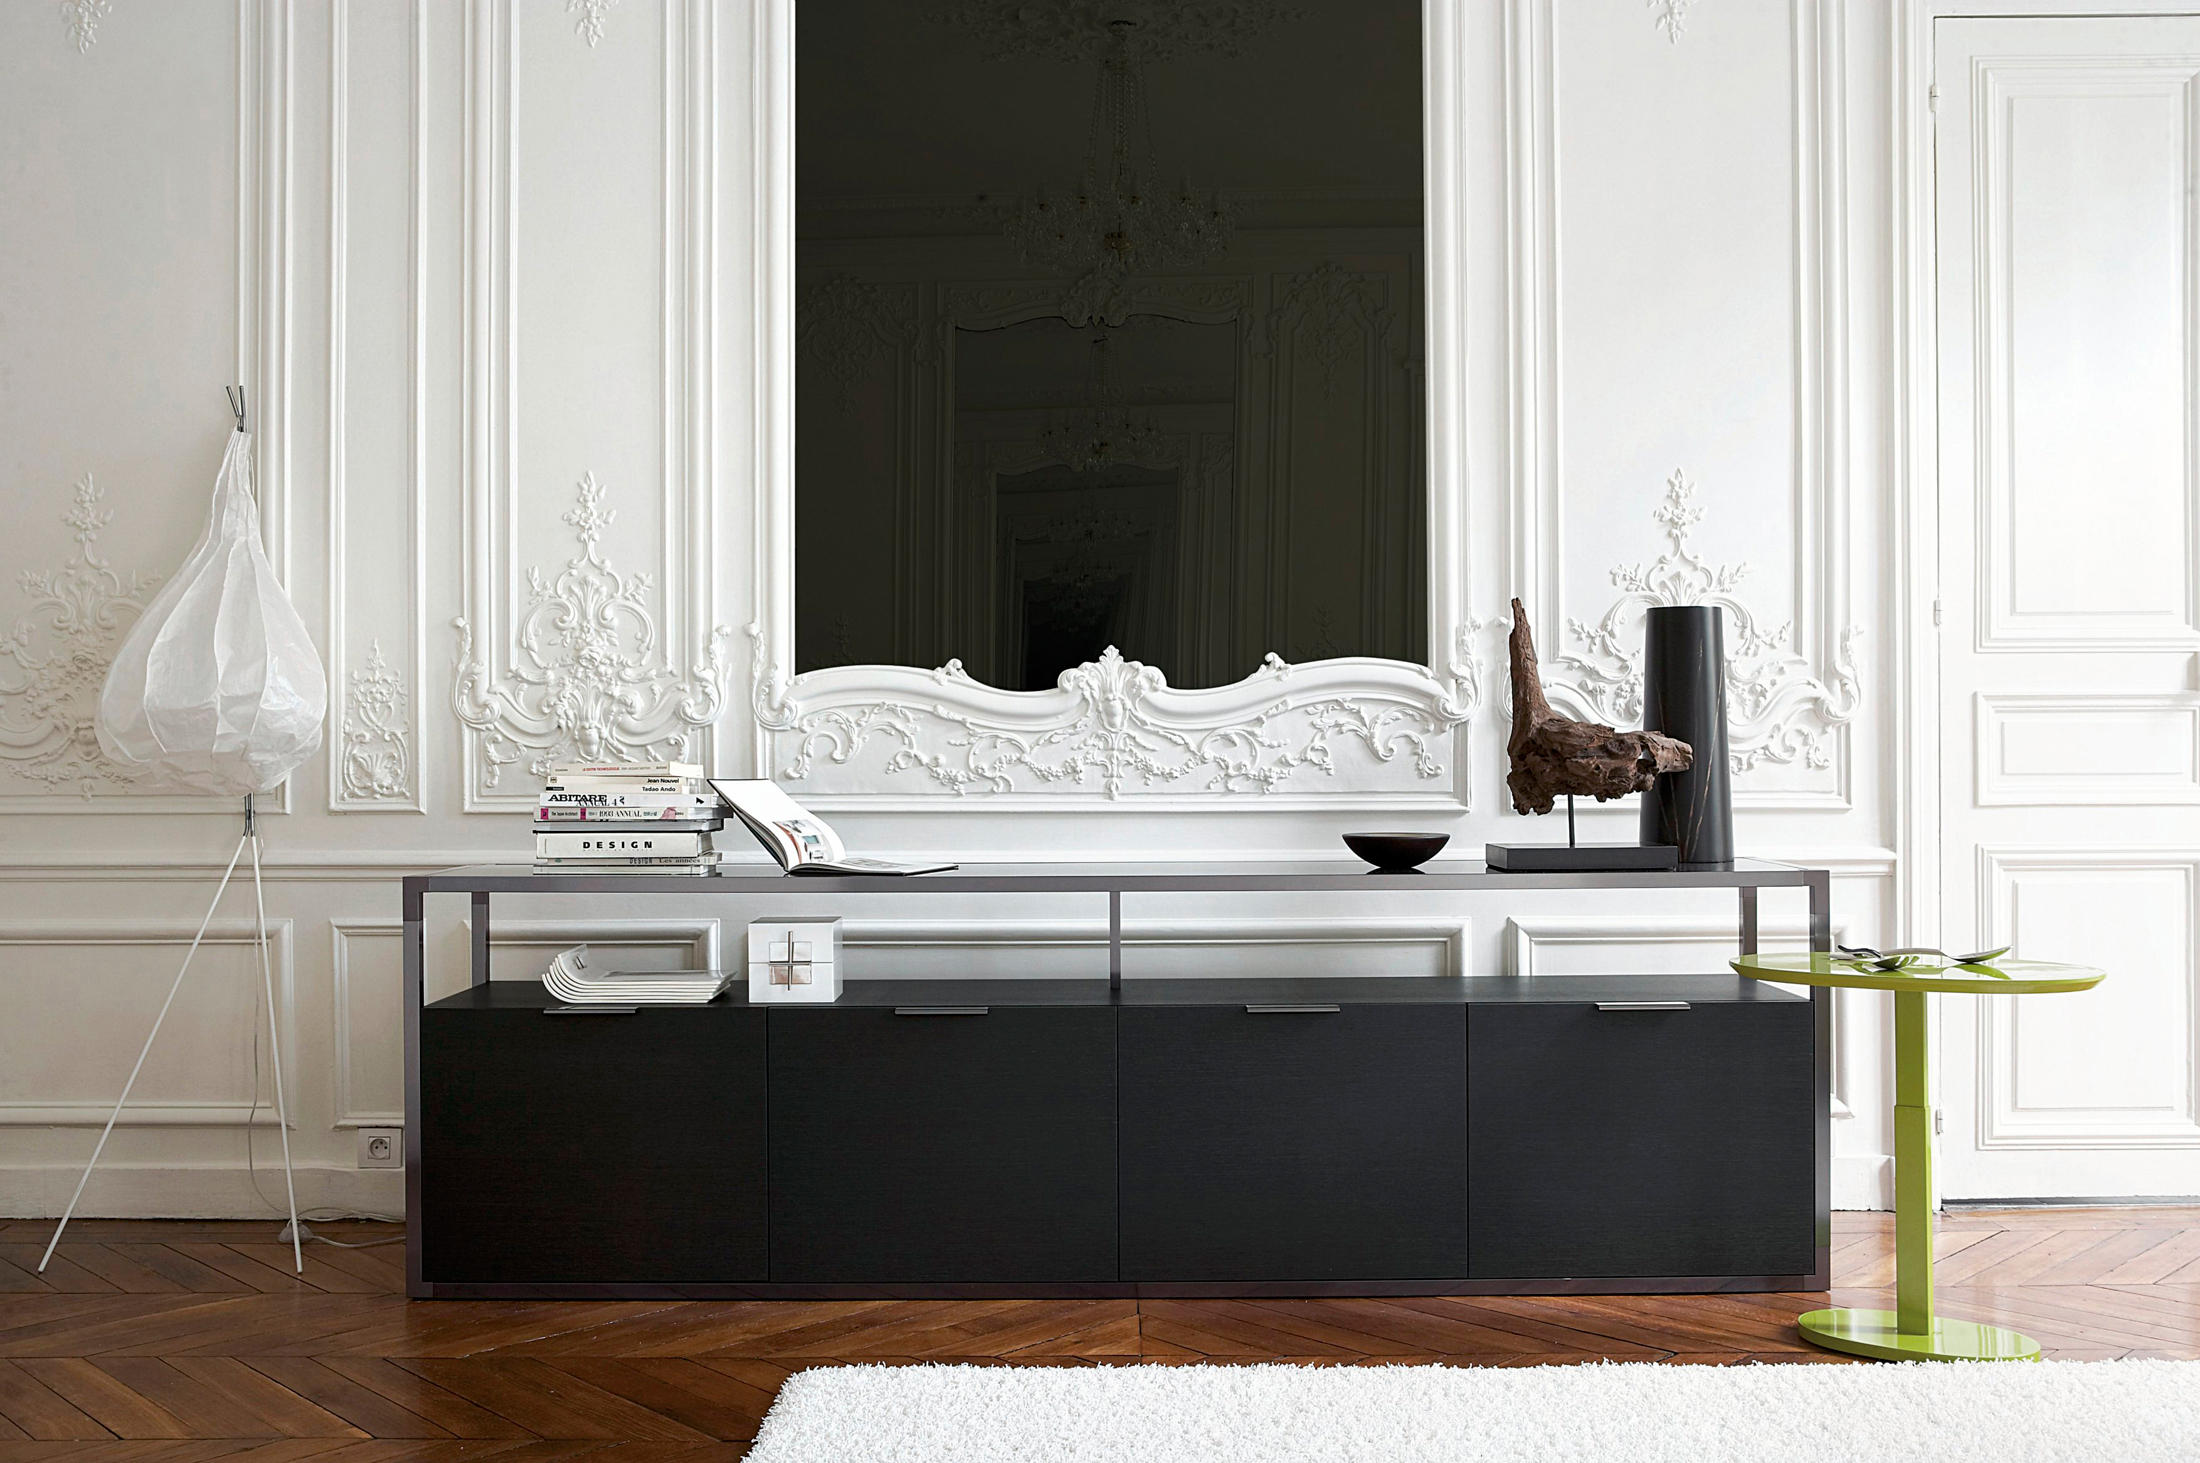 Ligne Roset Meuble Tele - Dedicato Sideboard Sideboards From Ligne Roset Architonic[mjhdah]https://images.ligne-roset.com/cache/PRODUCT/PRODUCT_01/living/p/r/products_01_living_1836x11007.jpg